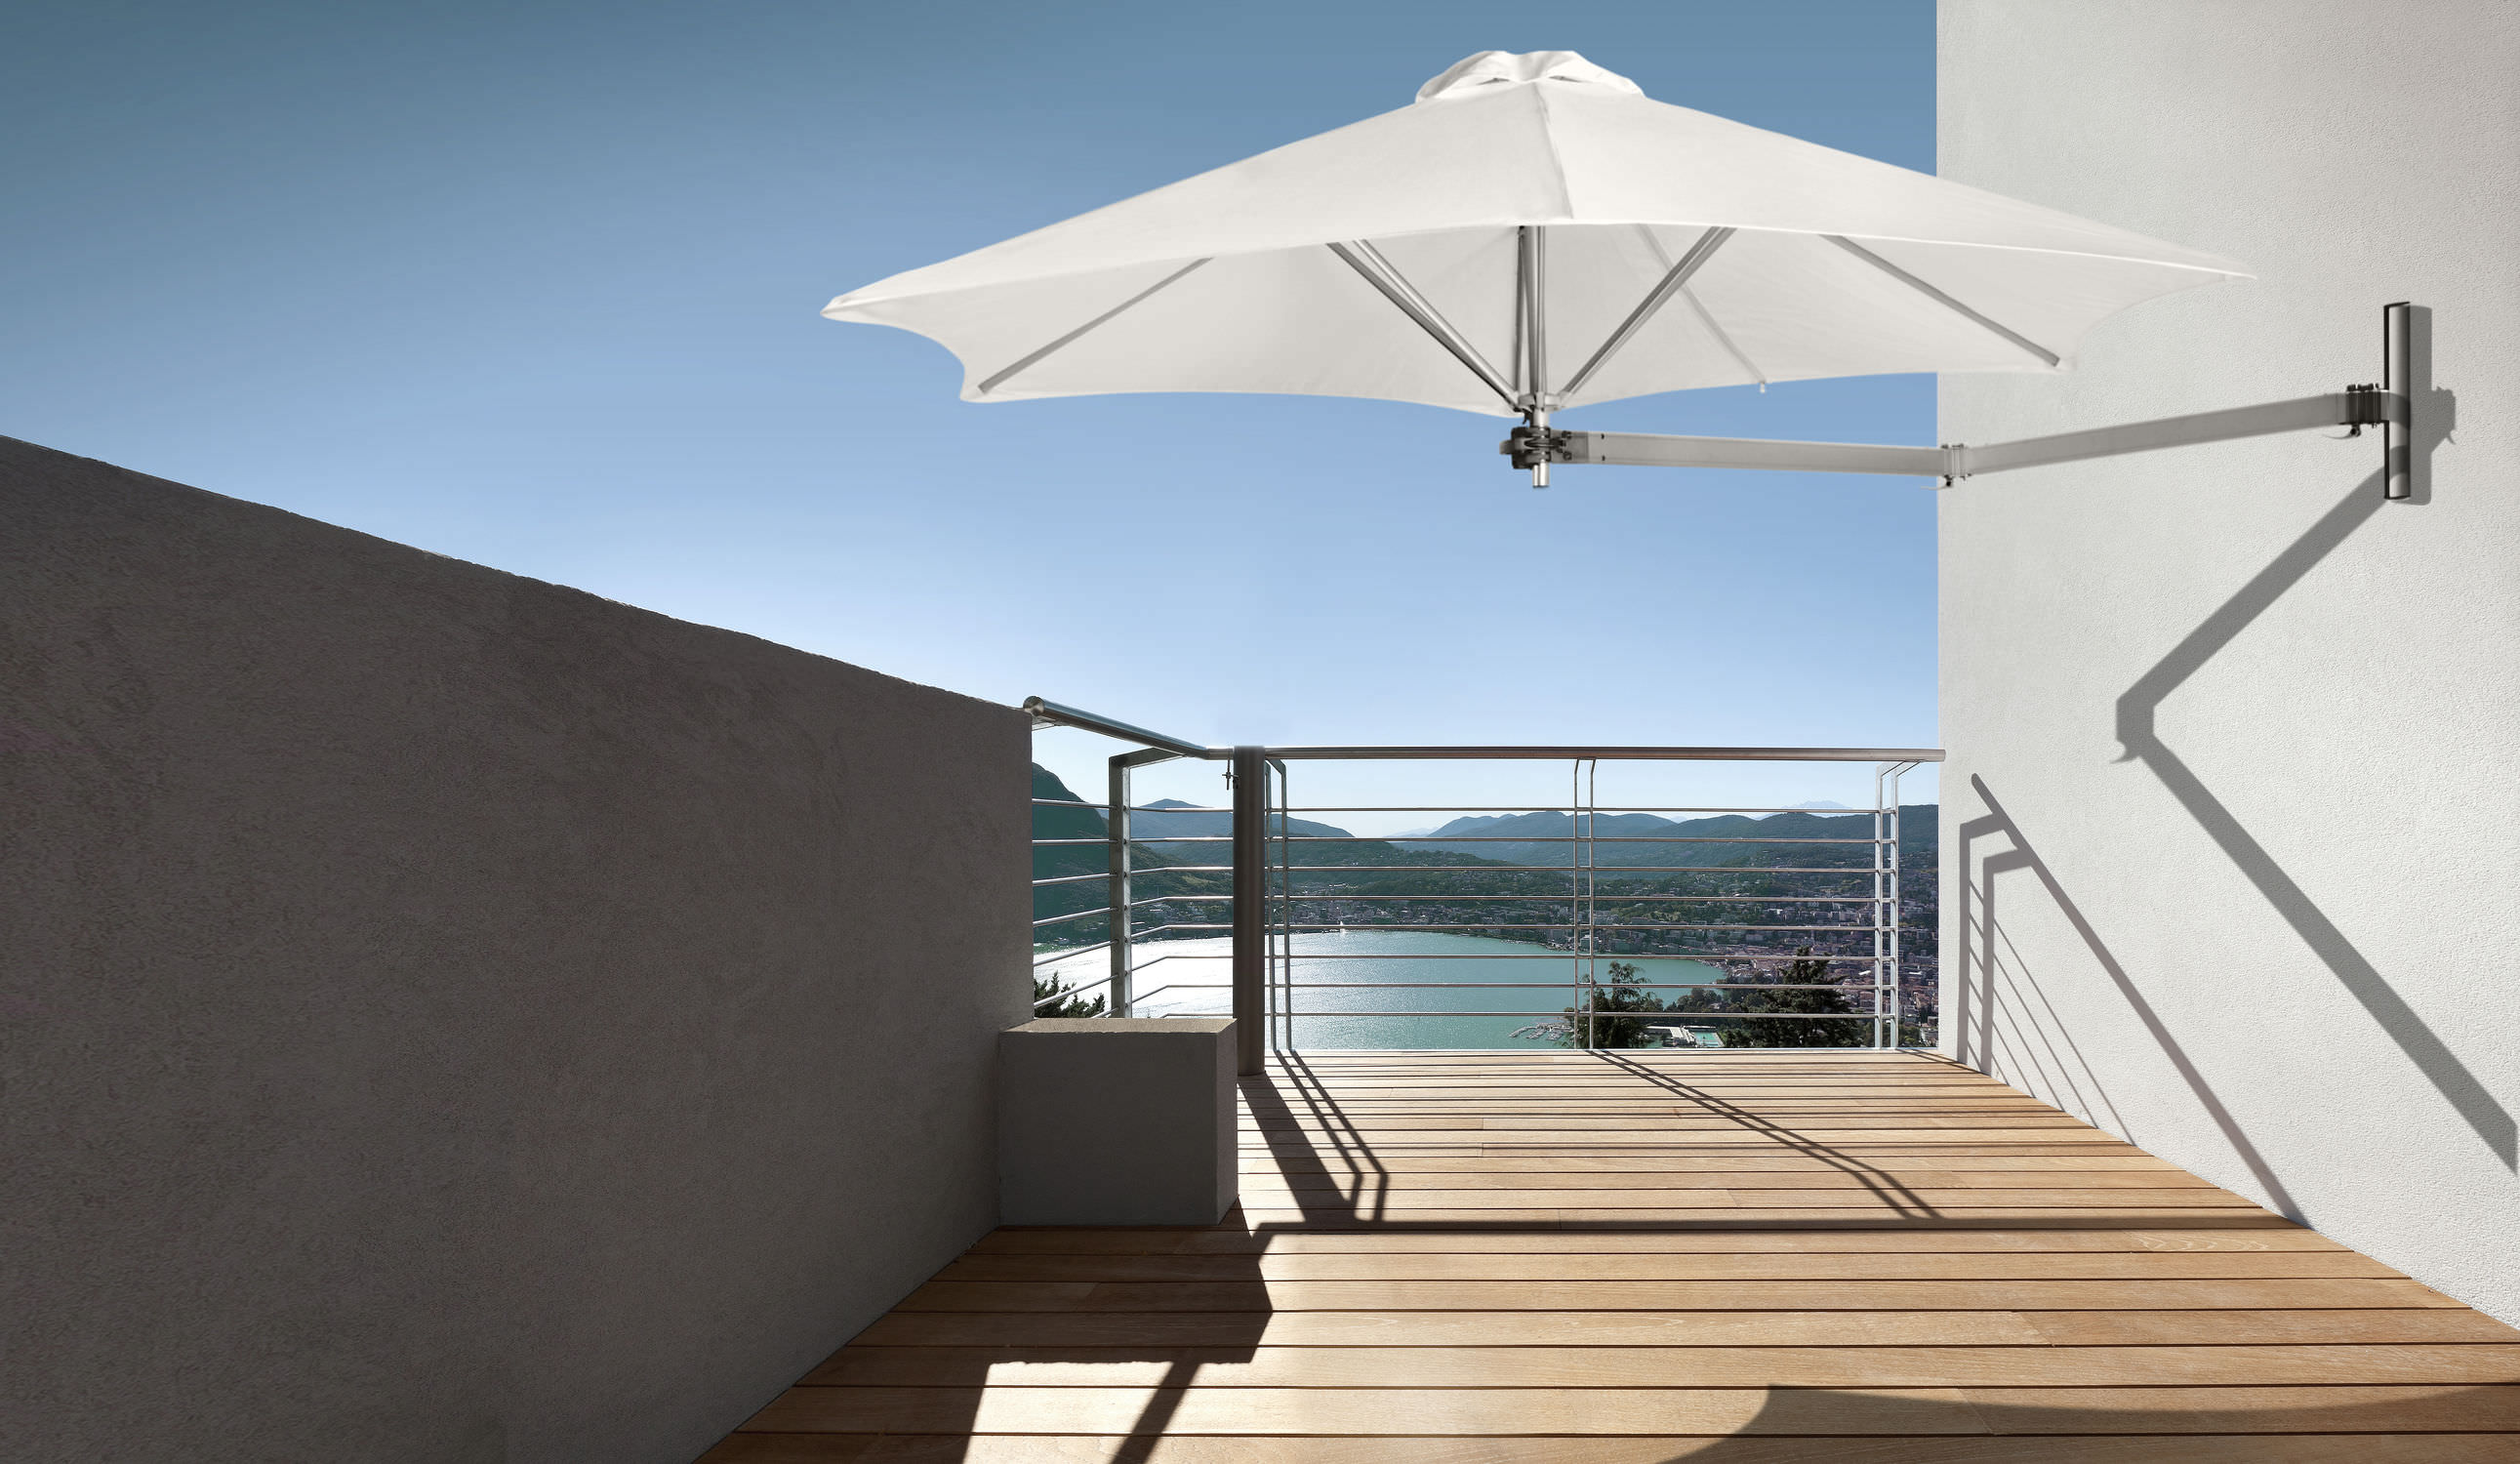 Wall Mounted Patio Umbrella Commercial Metal Orientable Paraflex By Peter Leleu